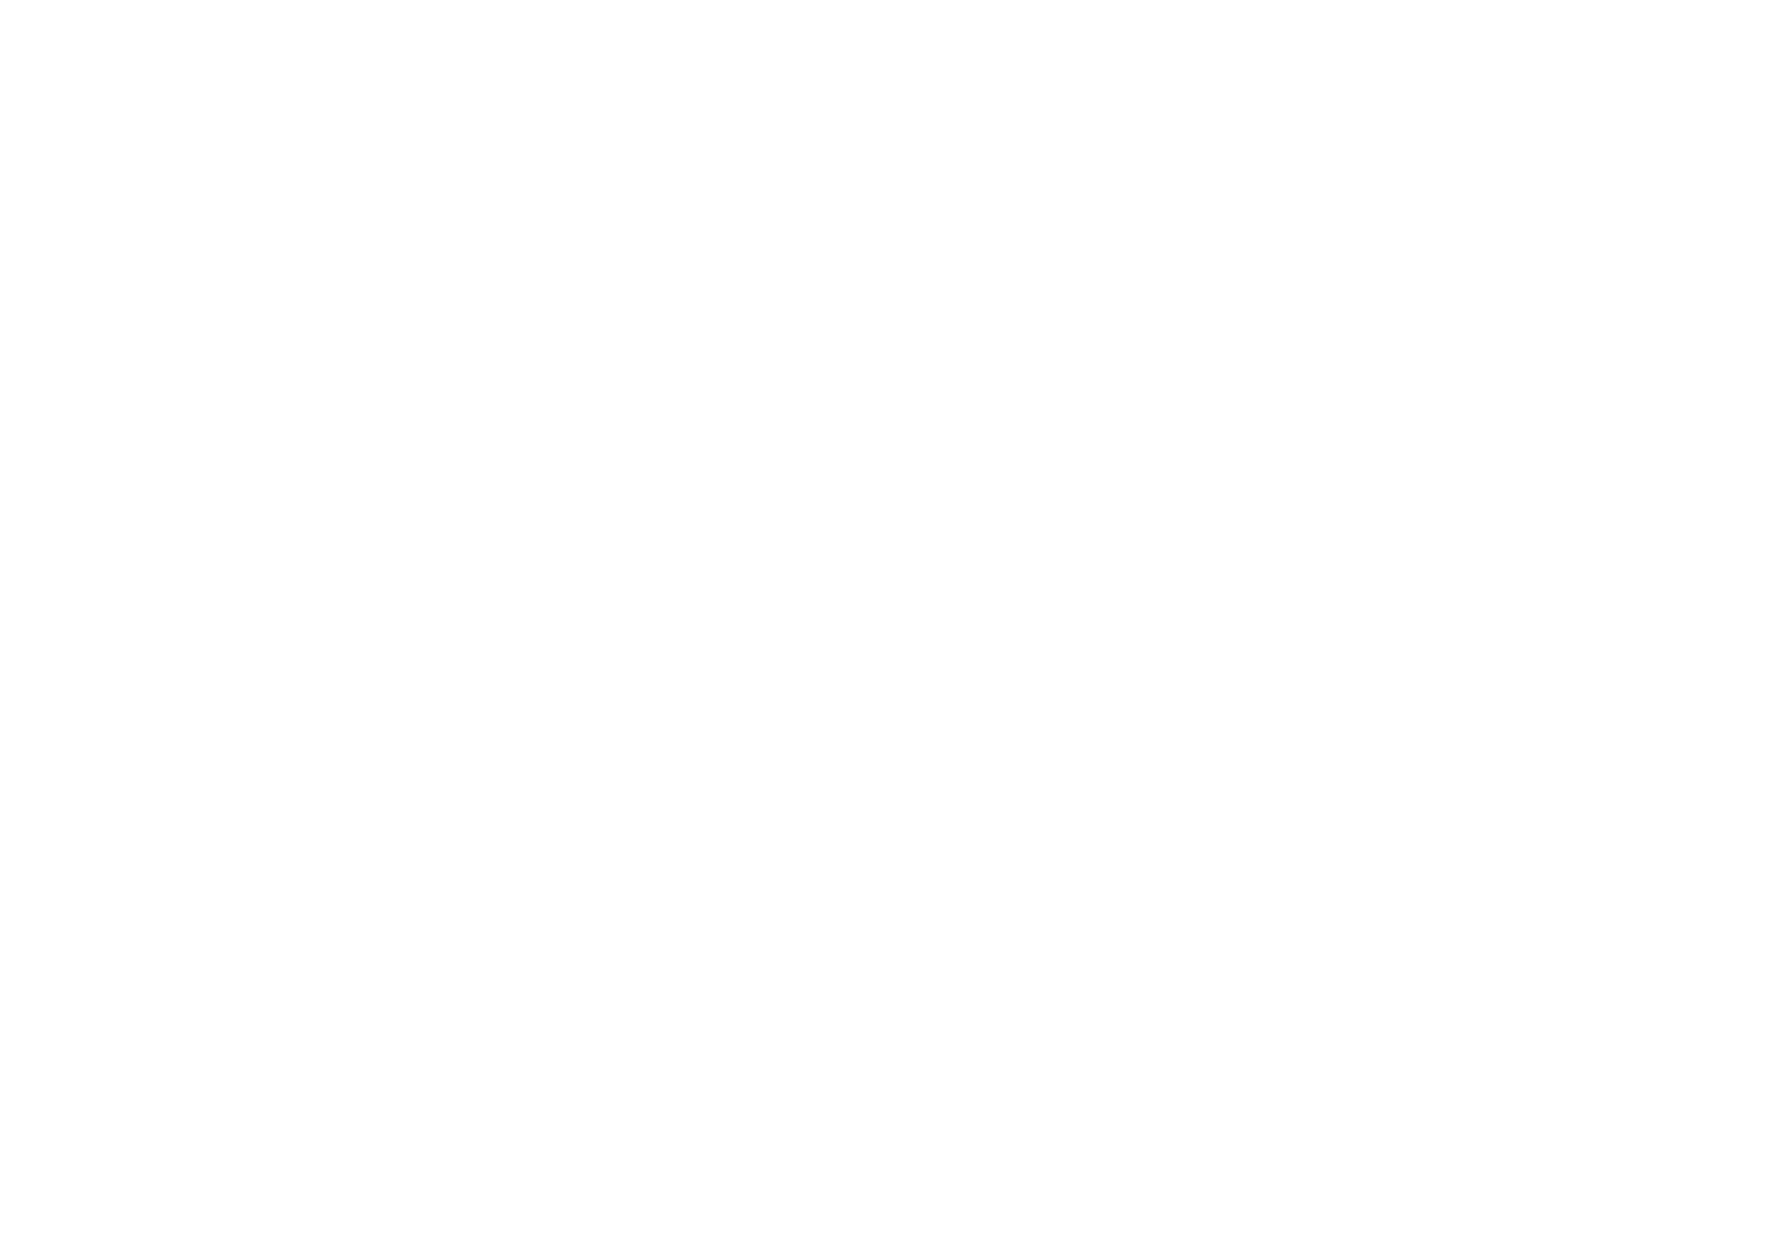 For the people who just need one chance at greatness